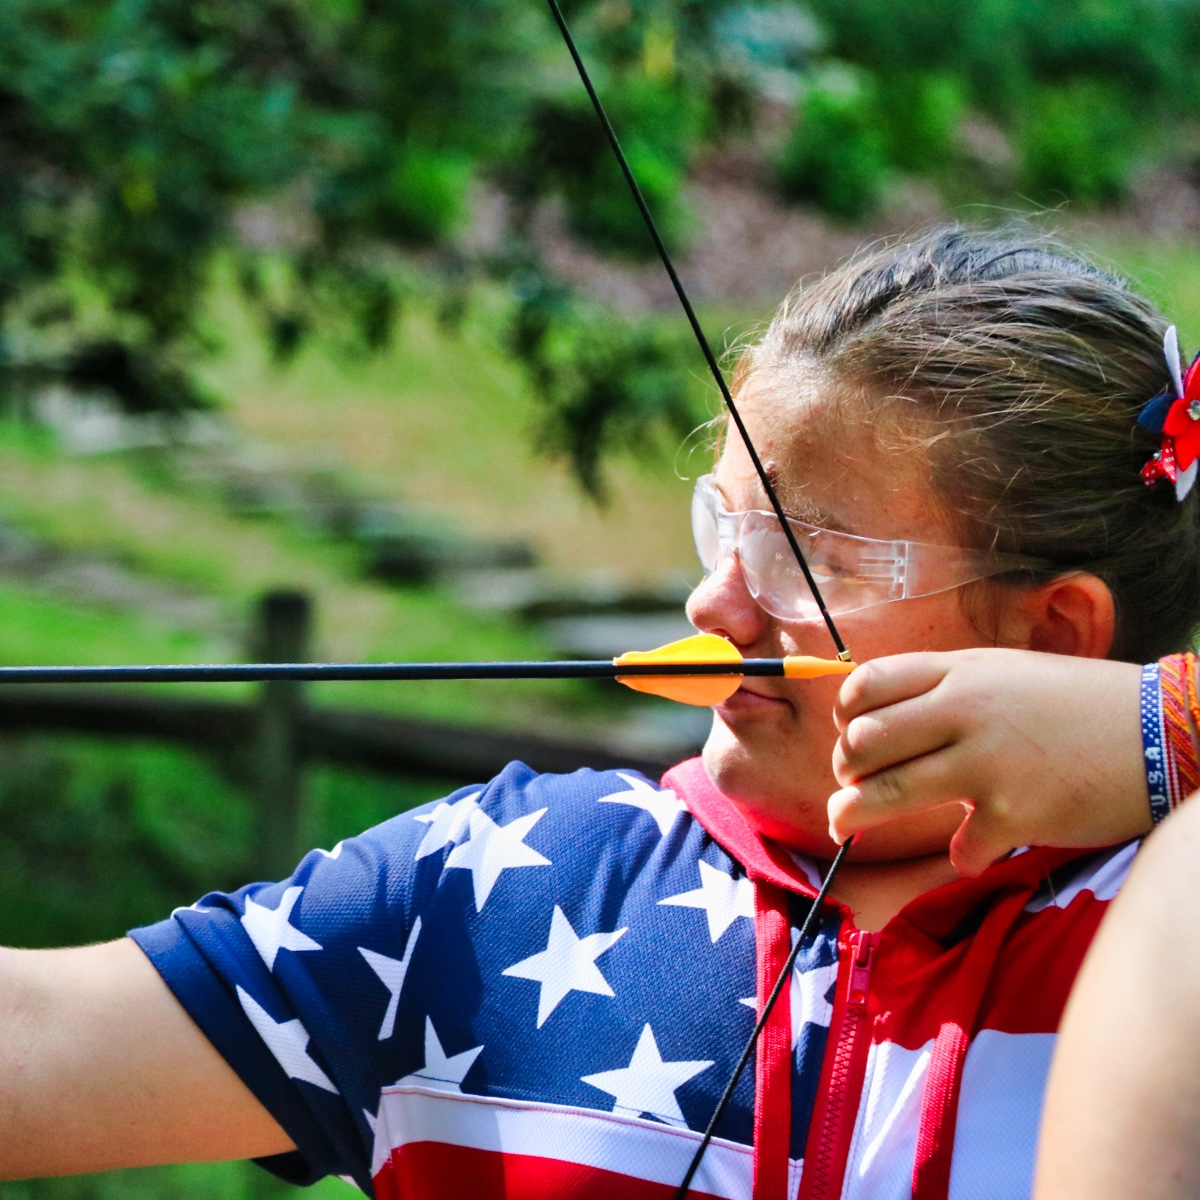 archery on 4th of July